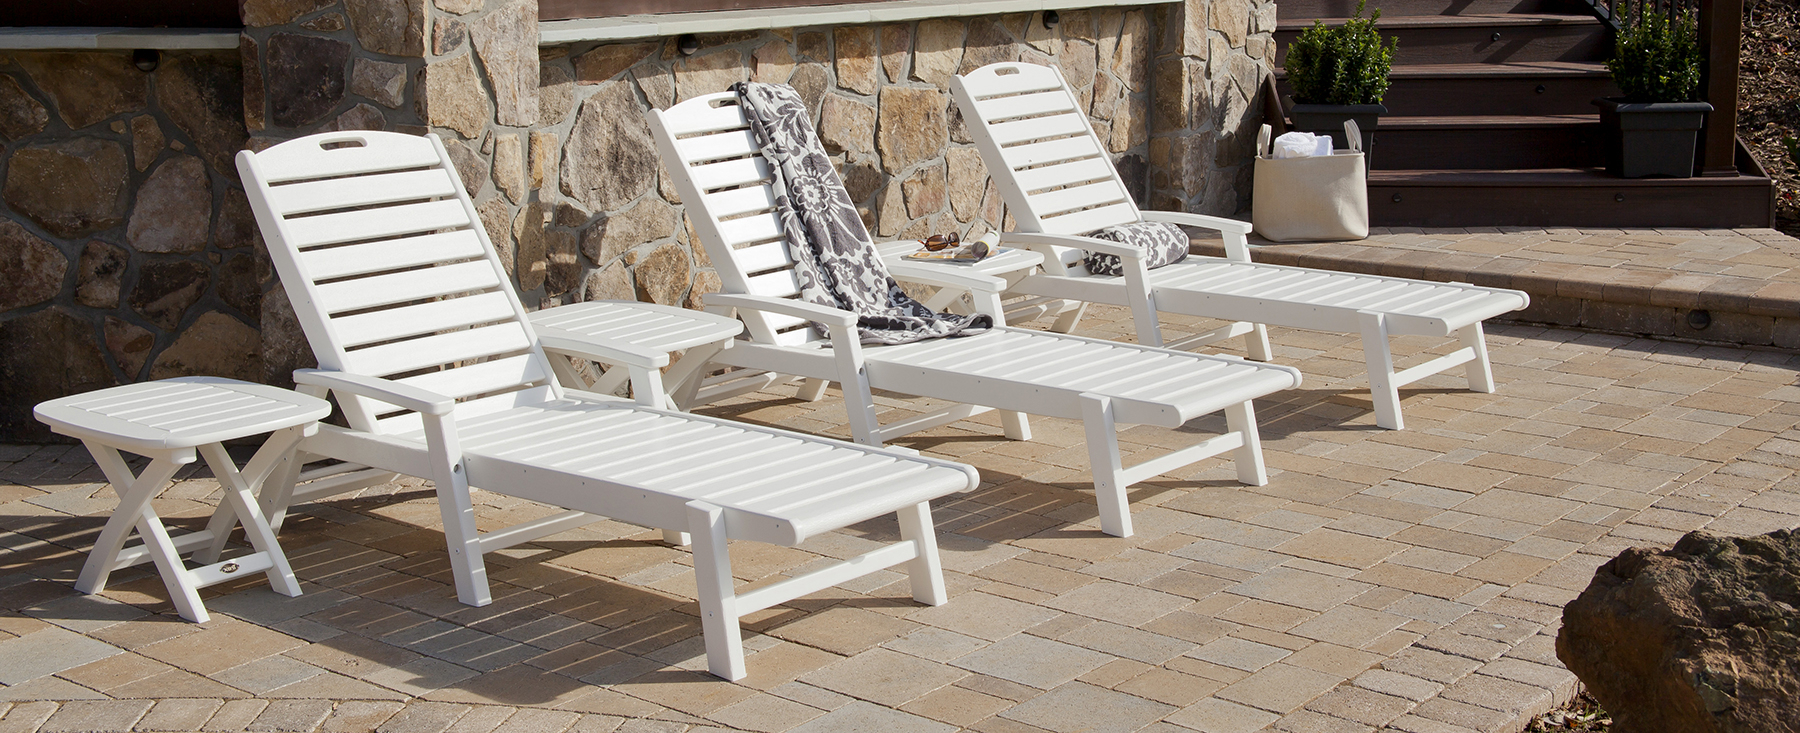 Favorite Plastic Chaise Lounges W/ Wheels Pertaining To The Shopper's Guide To Buying An Outdoor Chaise Lounge (View 20 of 25)